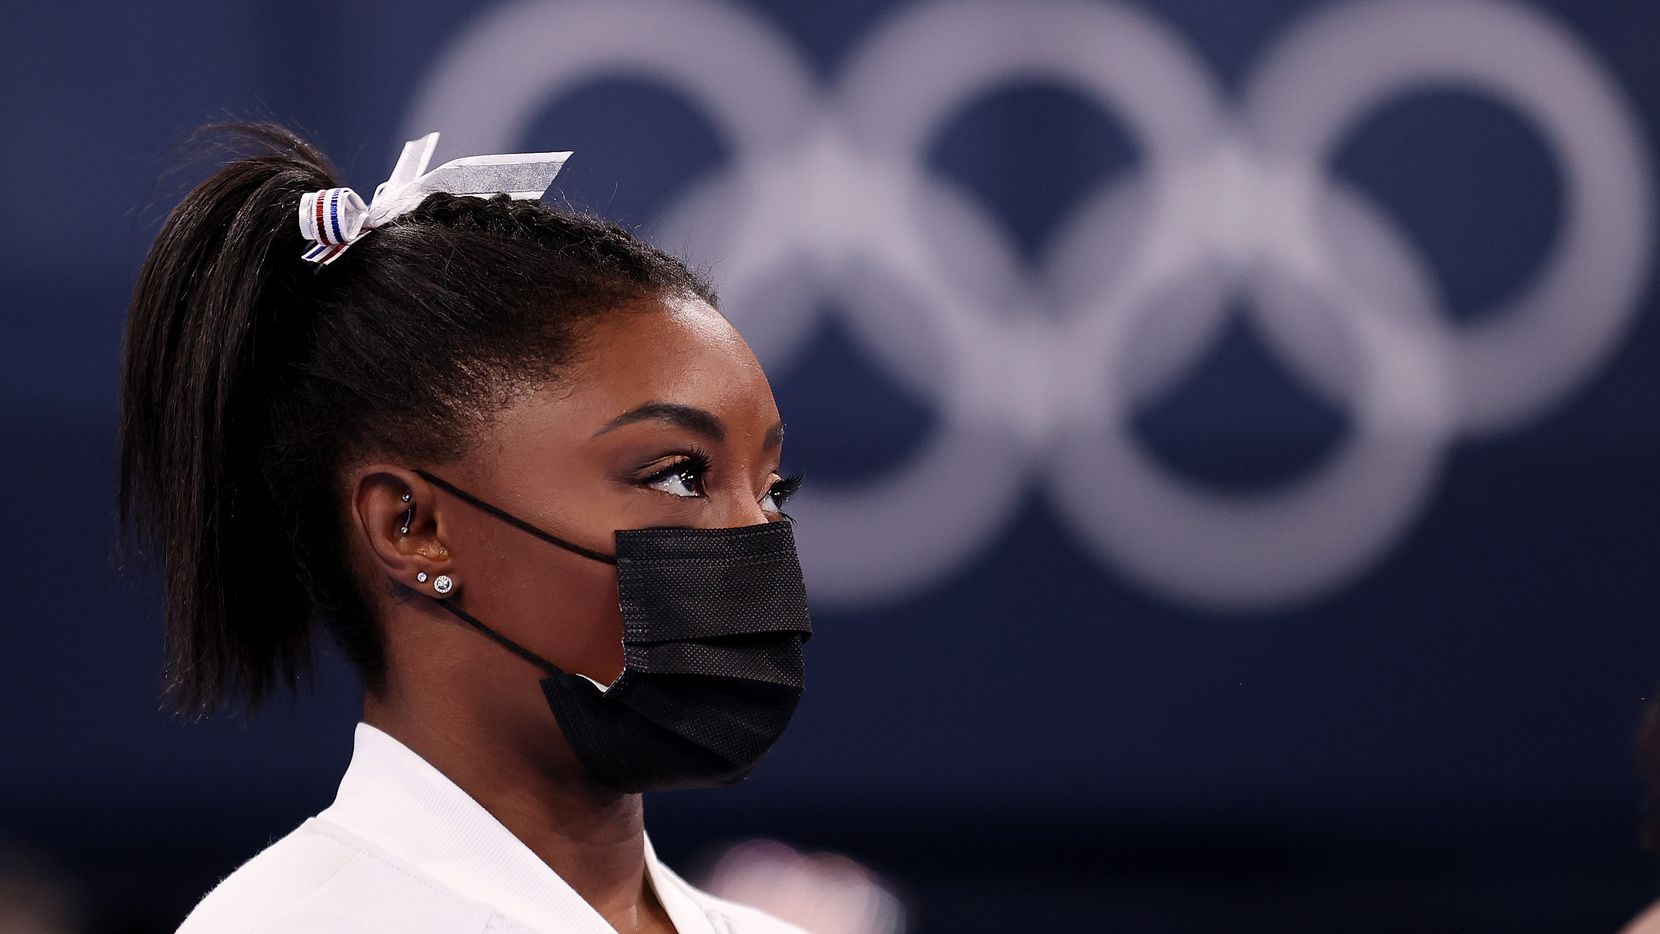 Team USA gymnast Simone Biles looks on during the women's team final at the Tokyo Olympics on July 27.